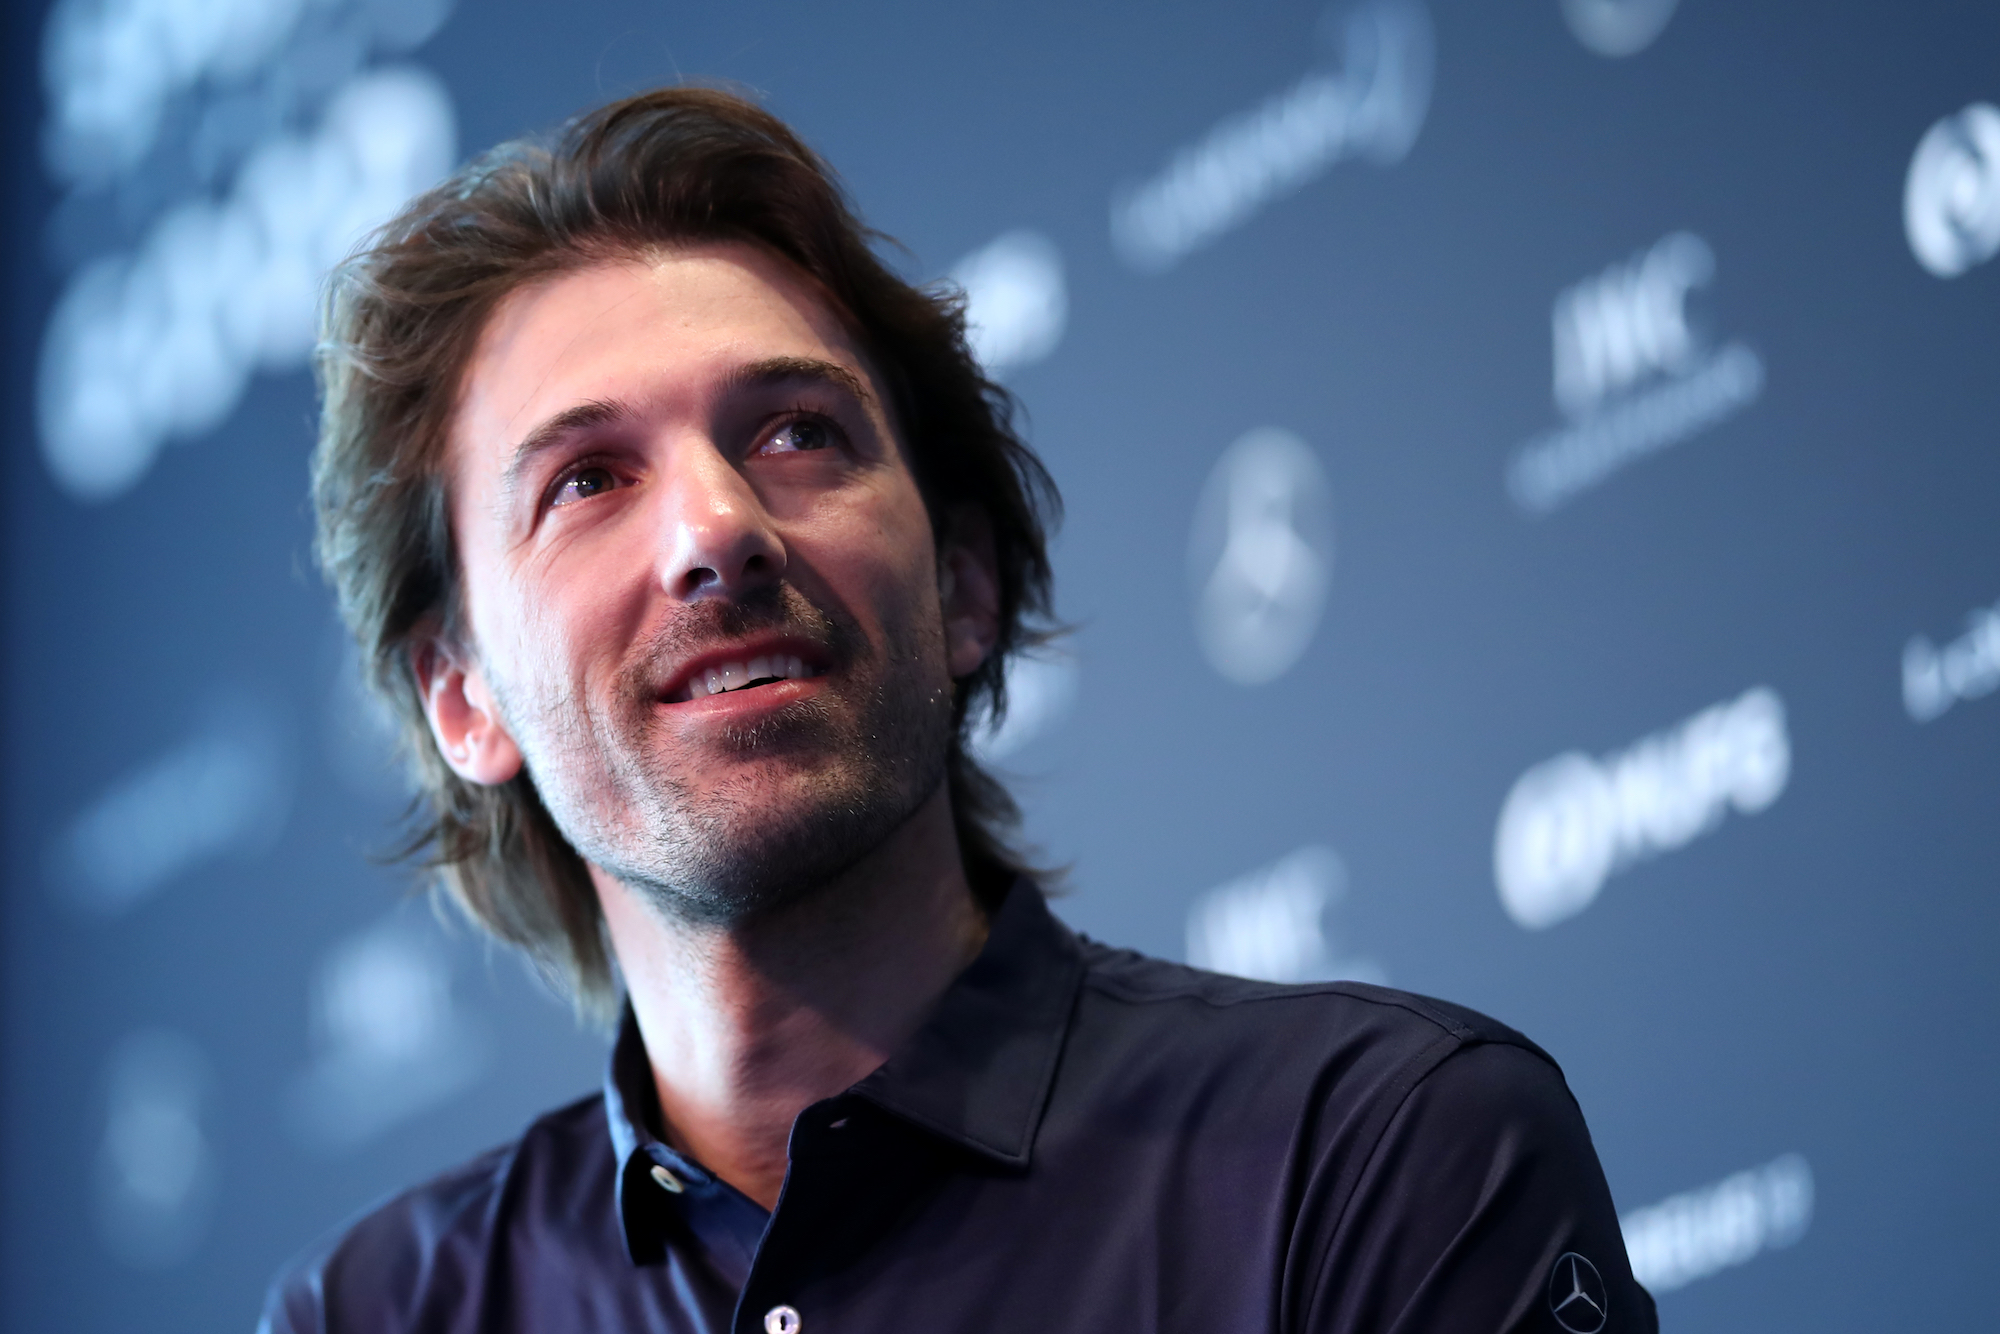 Fabian Cancellara says criticism of Ineos cycling sponsorship 'not fair'